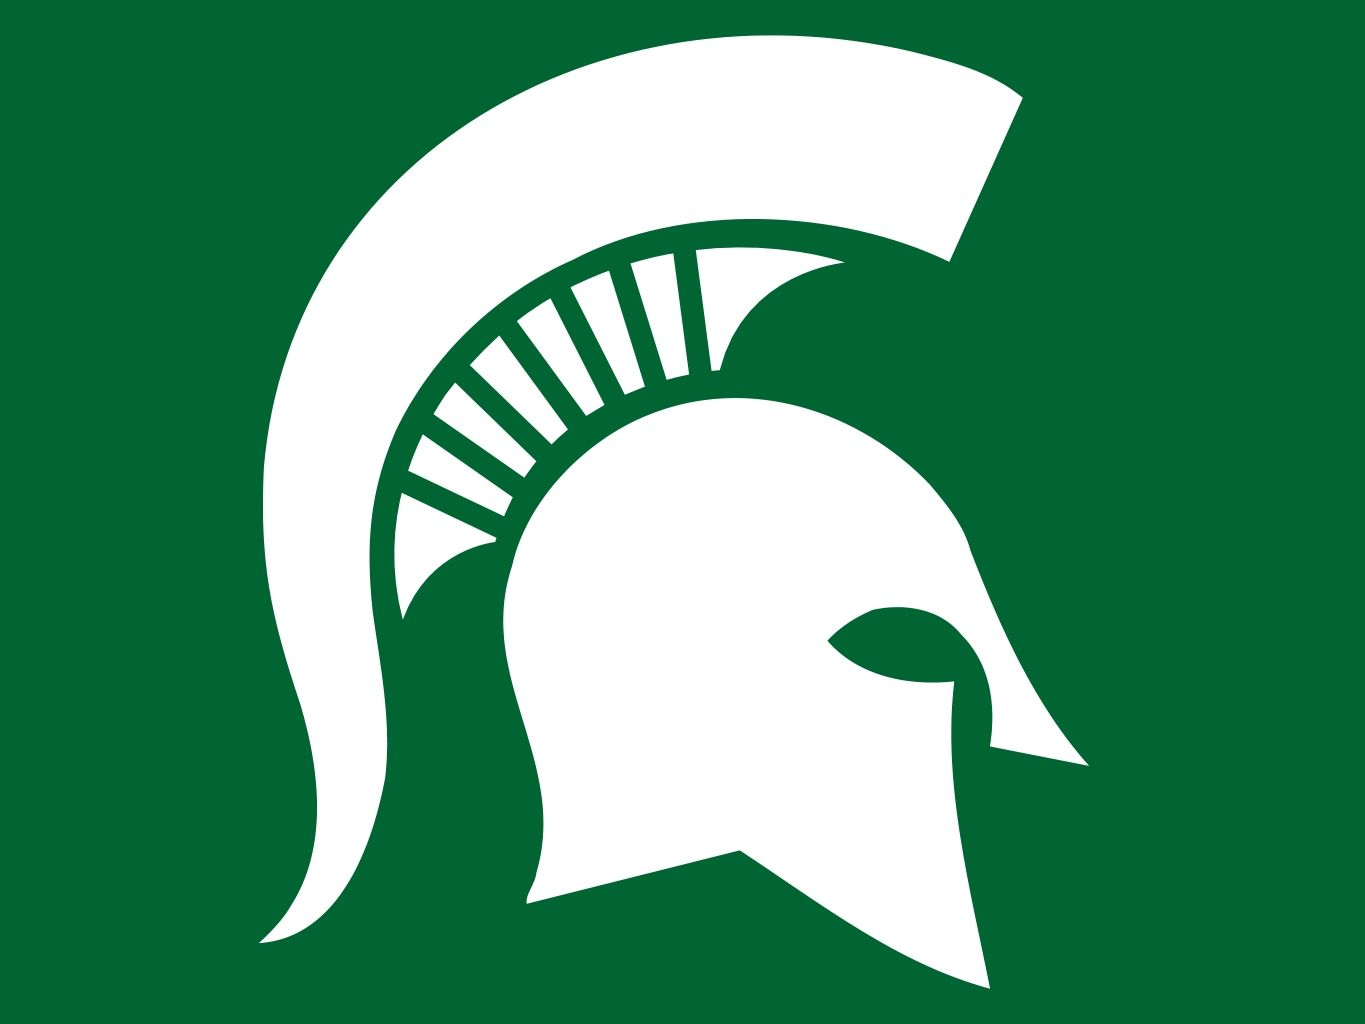 introwbi at michigan state university is the doctor in rh pinterest com michigan state logo png michigan state logo vector